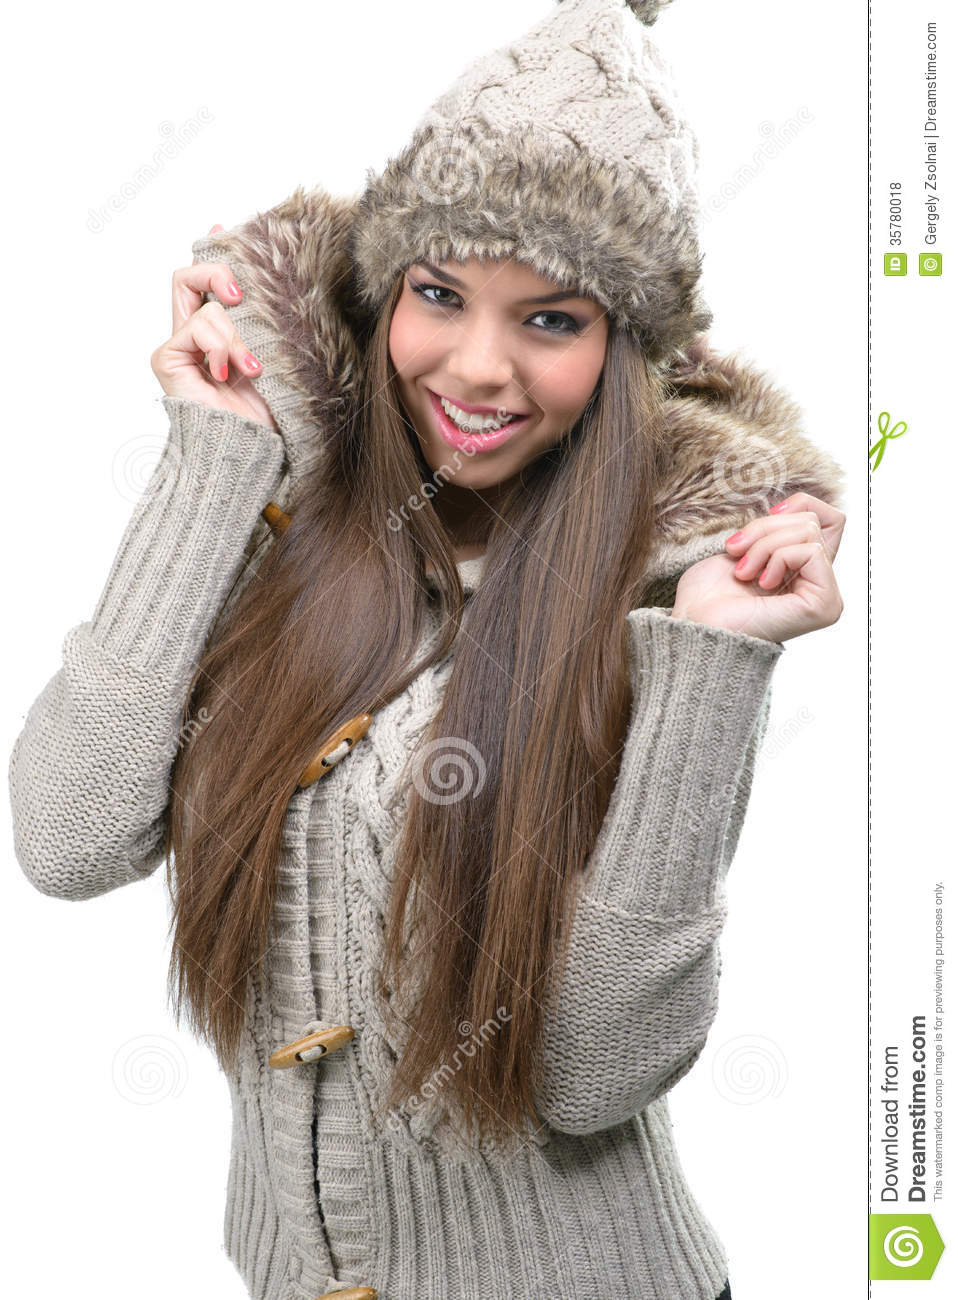 Fashion Model Warm Winter Clothing Royalty Free Stock Photos Image 35780018